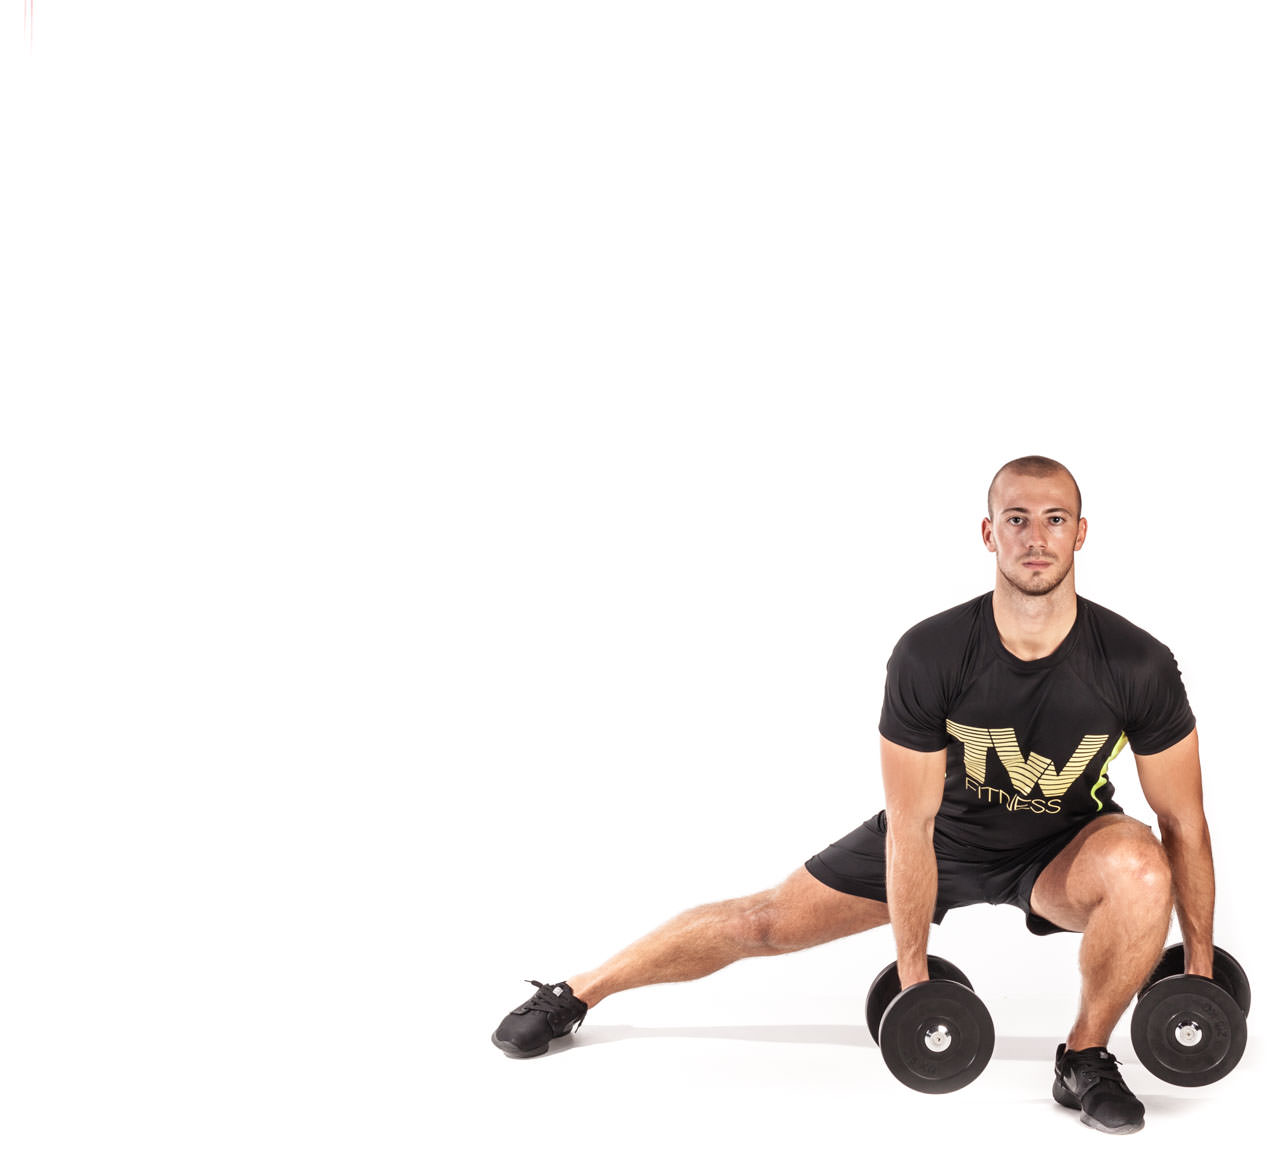 Dumbbell Side Lunge frame #4